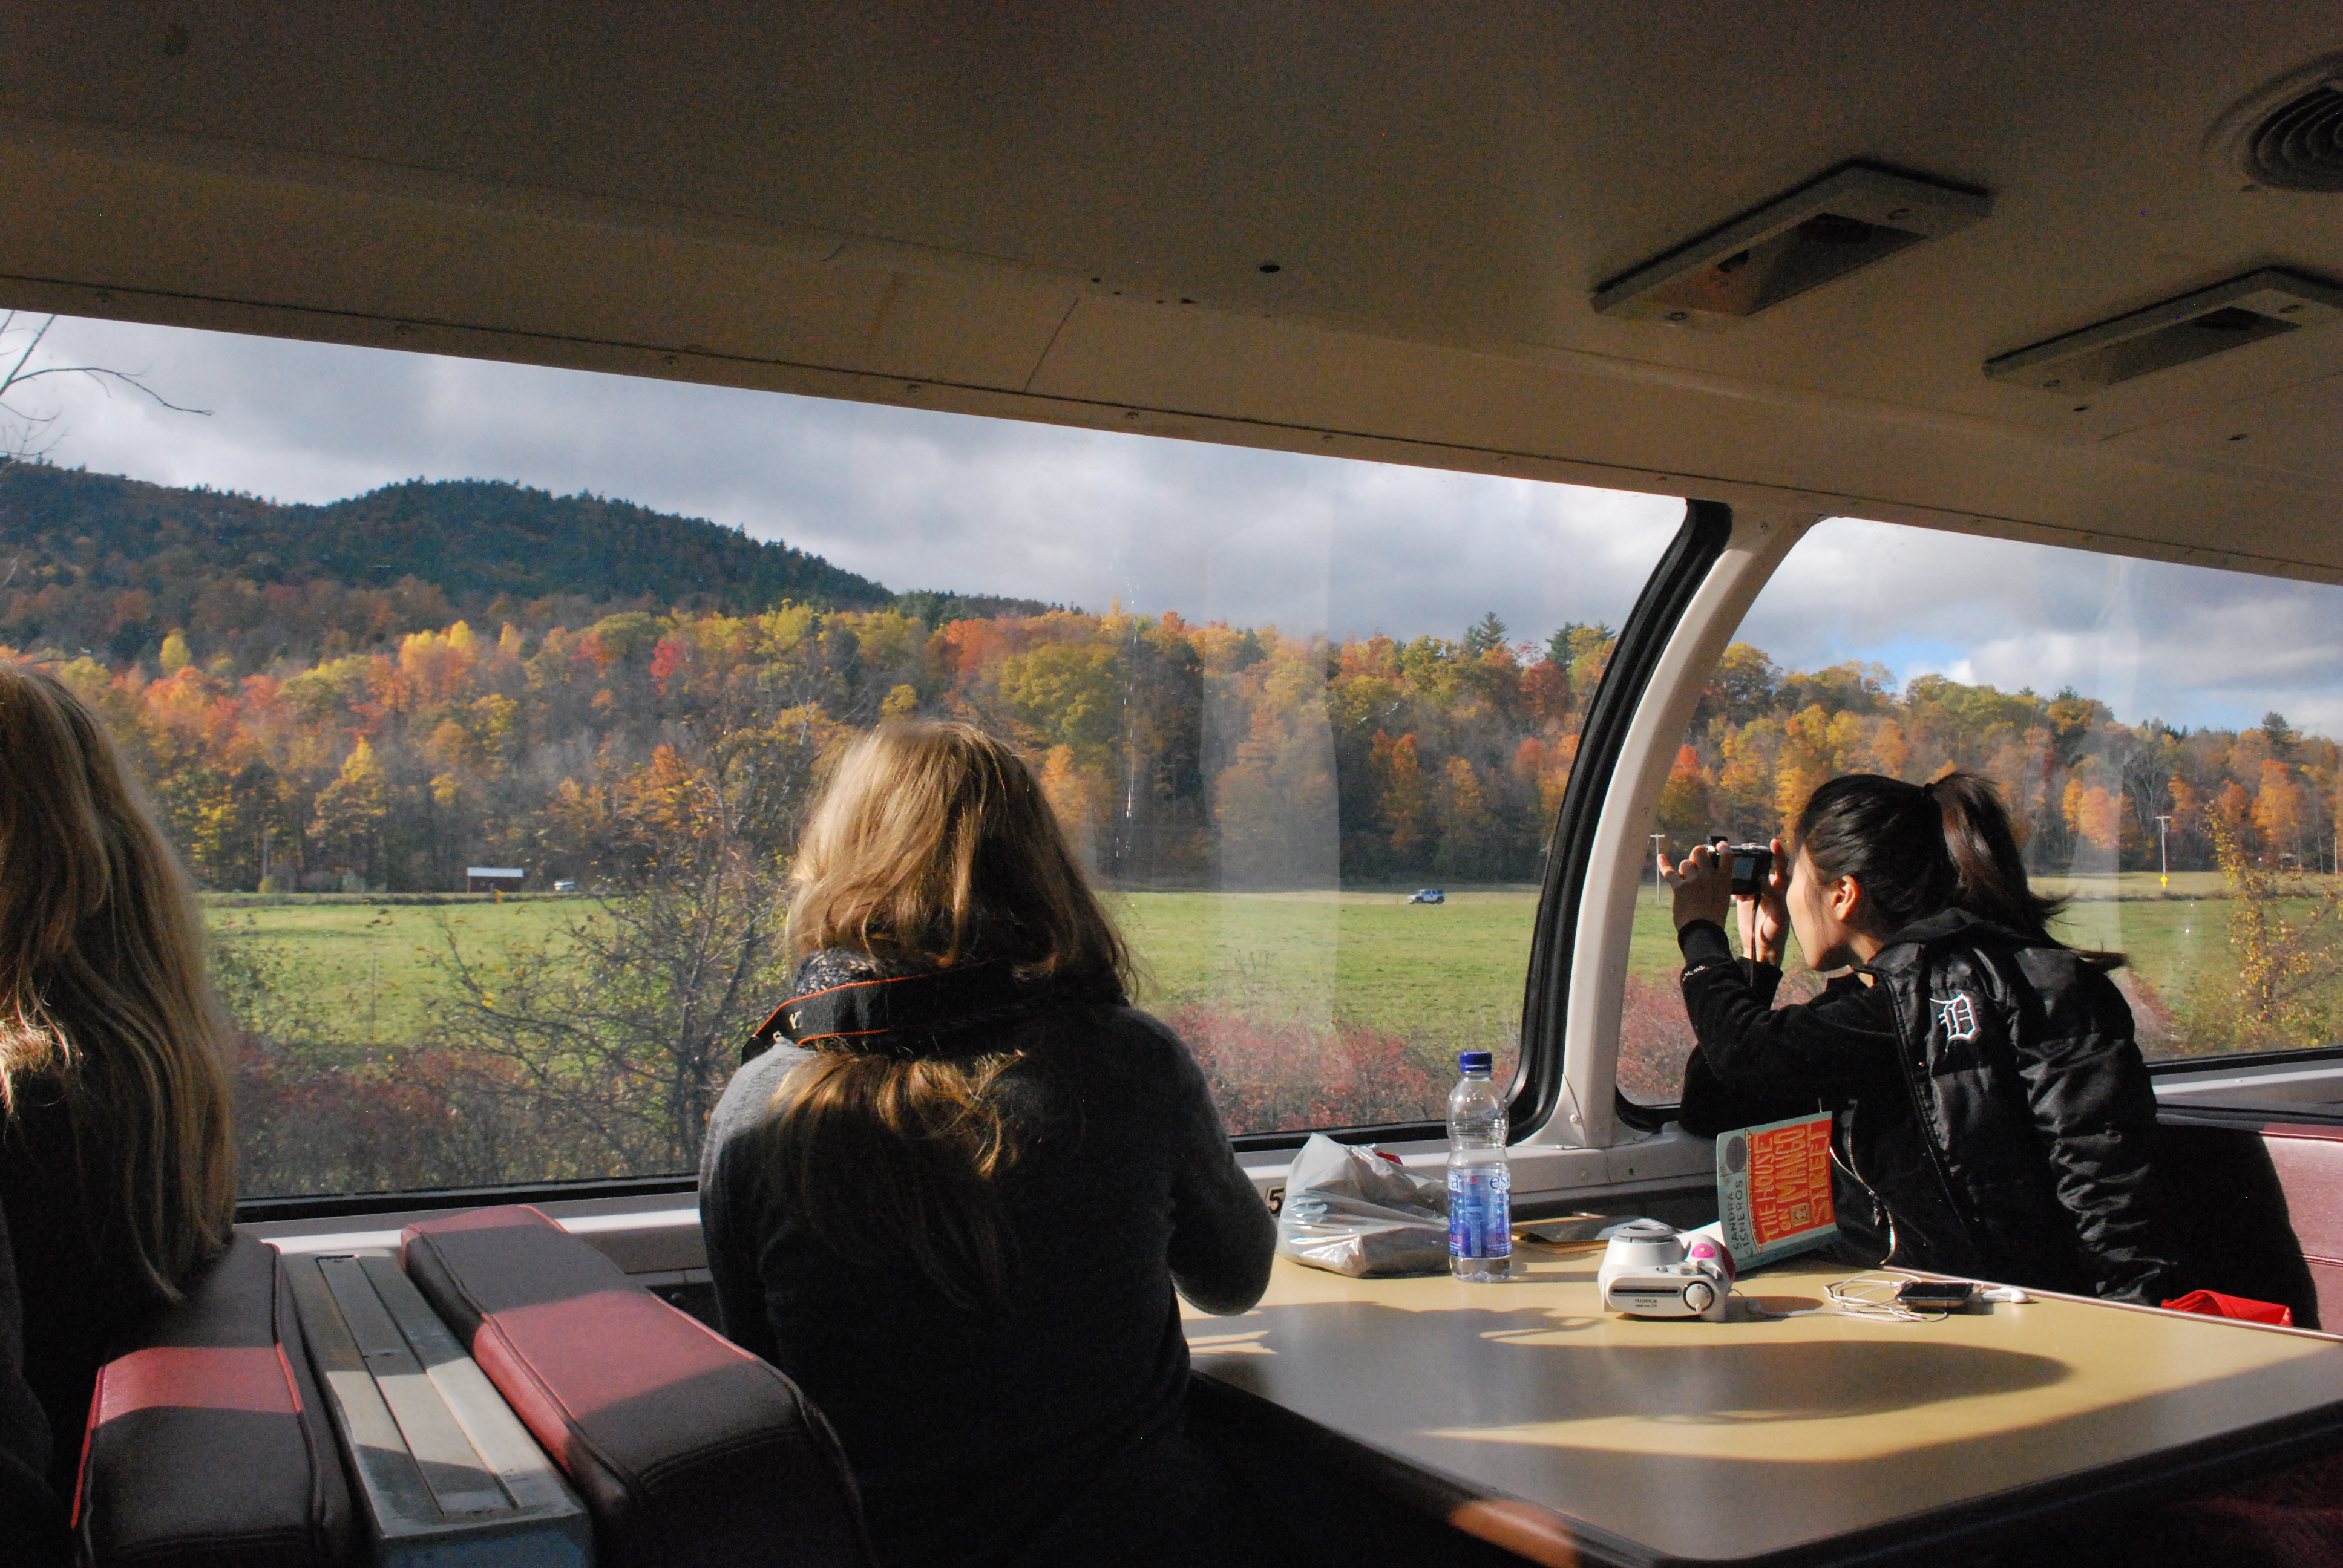 The Fall Foliage Train Ride Through New York With